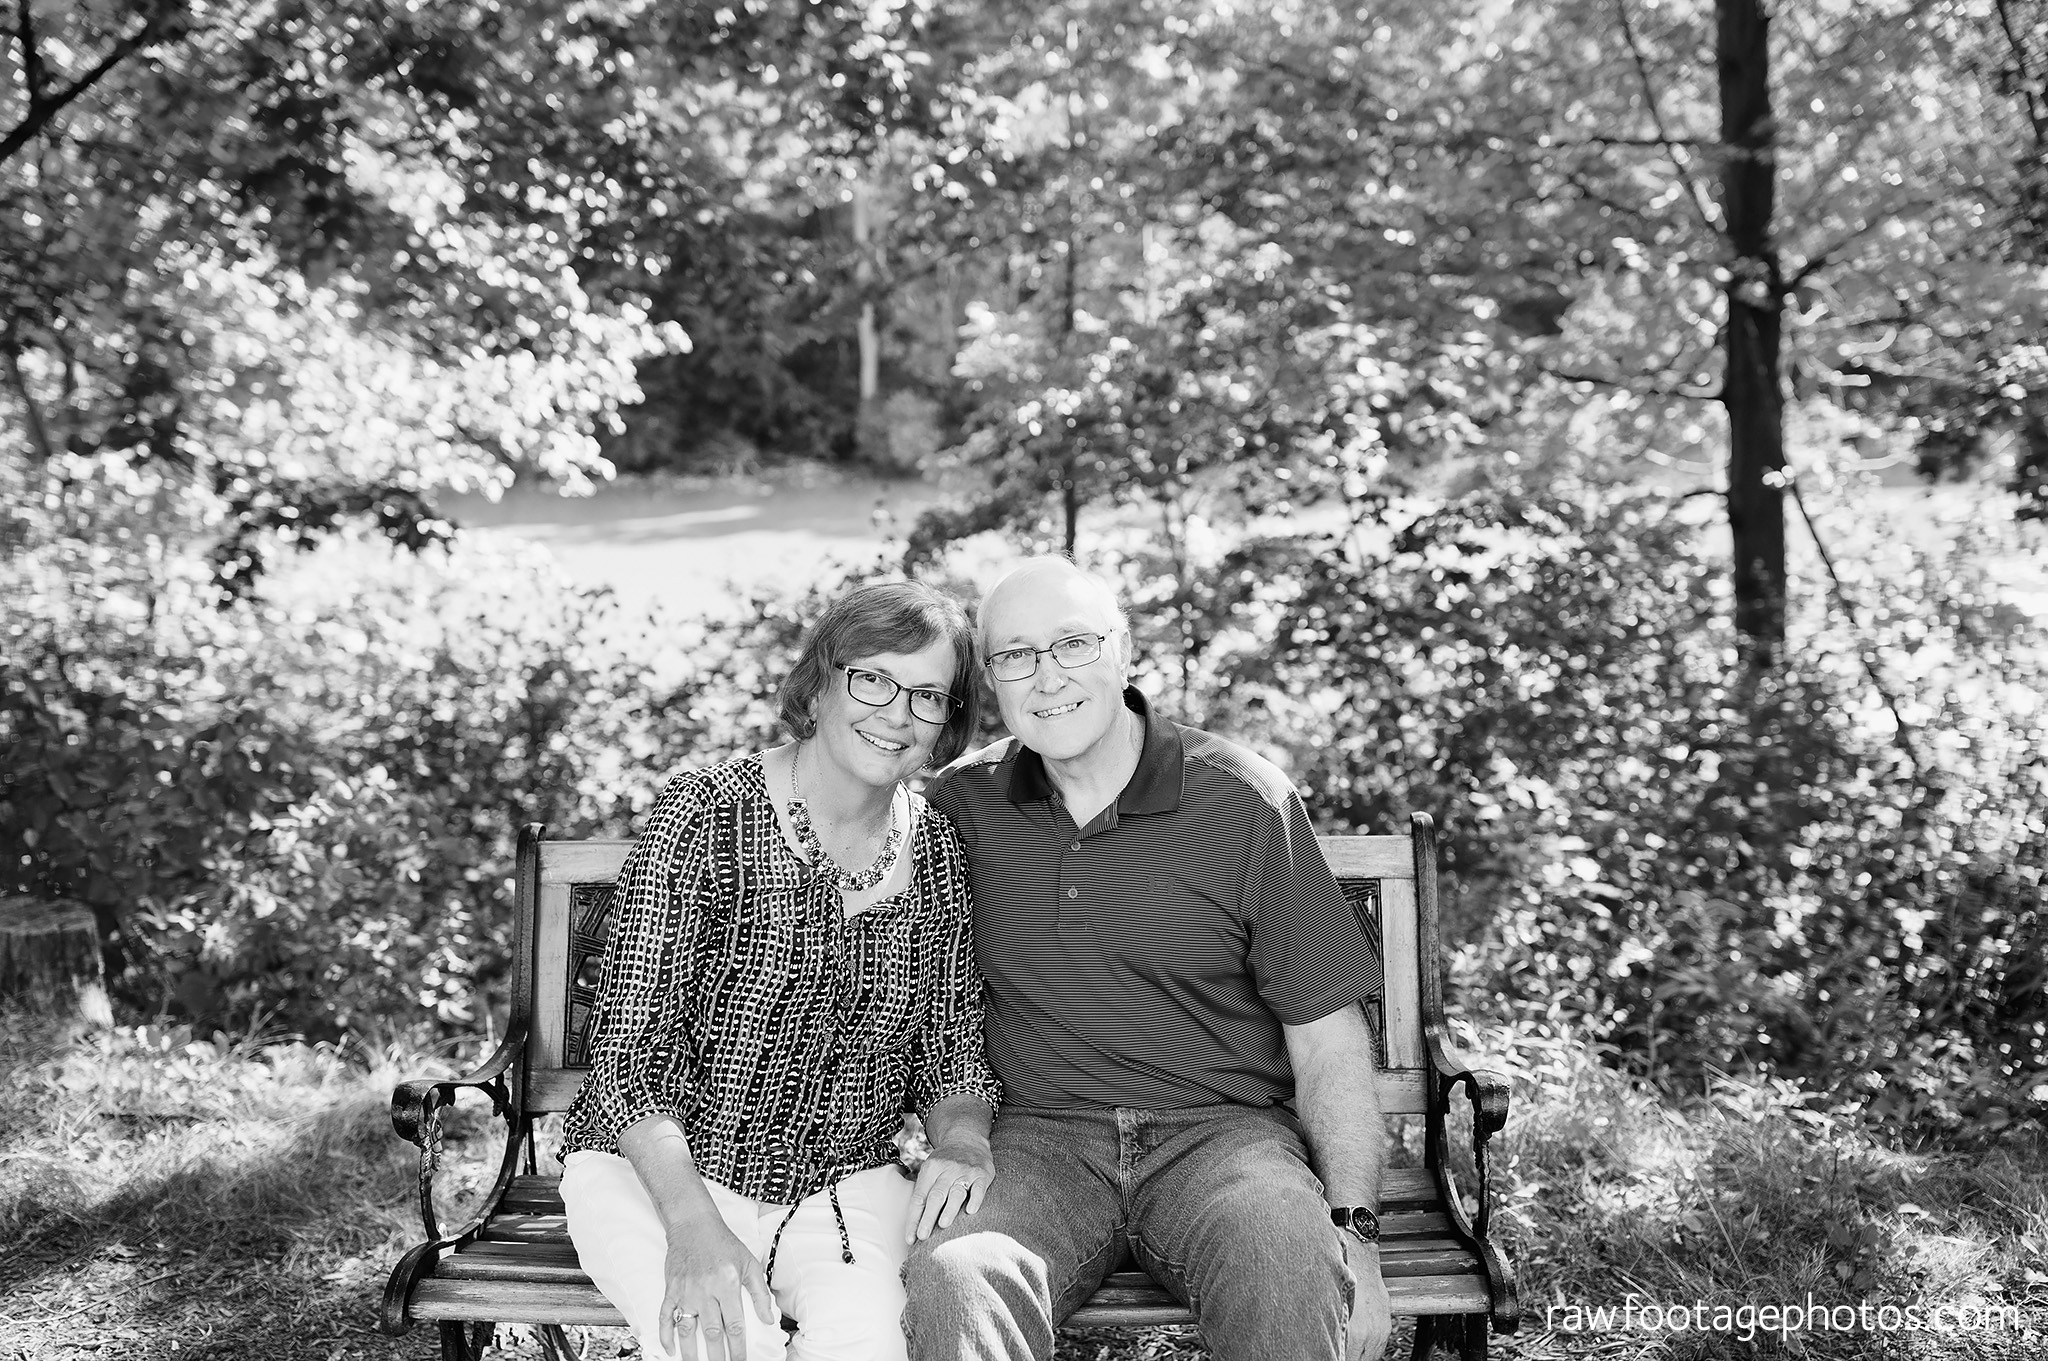 london_ontario_extended_family_backyard_session-raw_footage_photography026.jpg